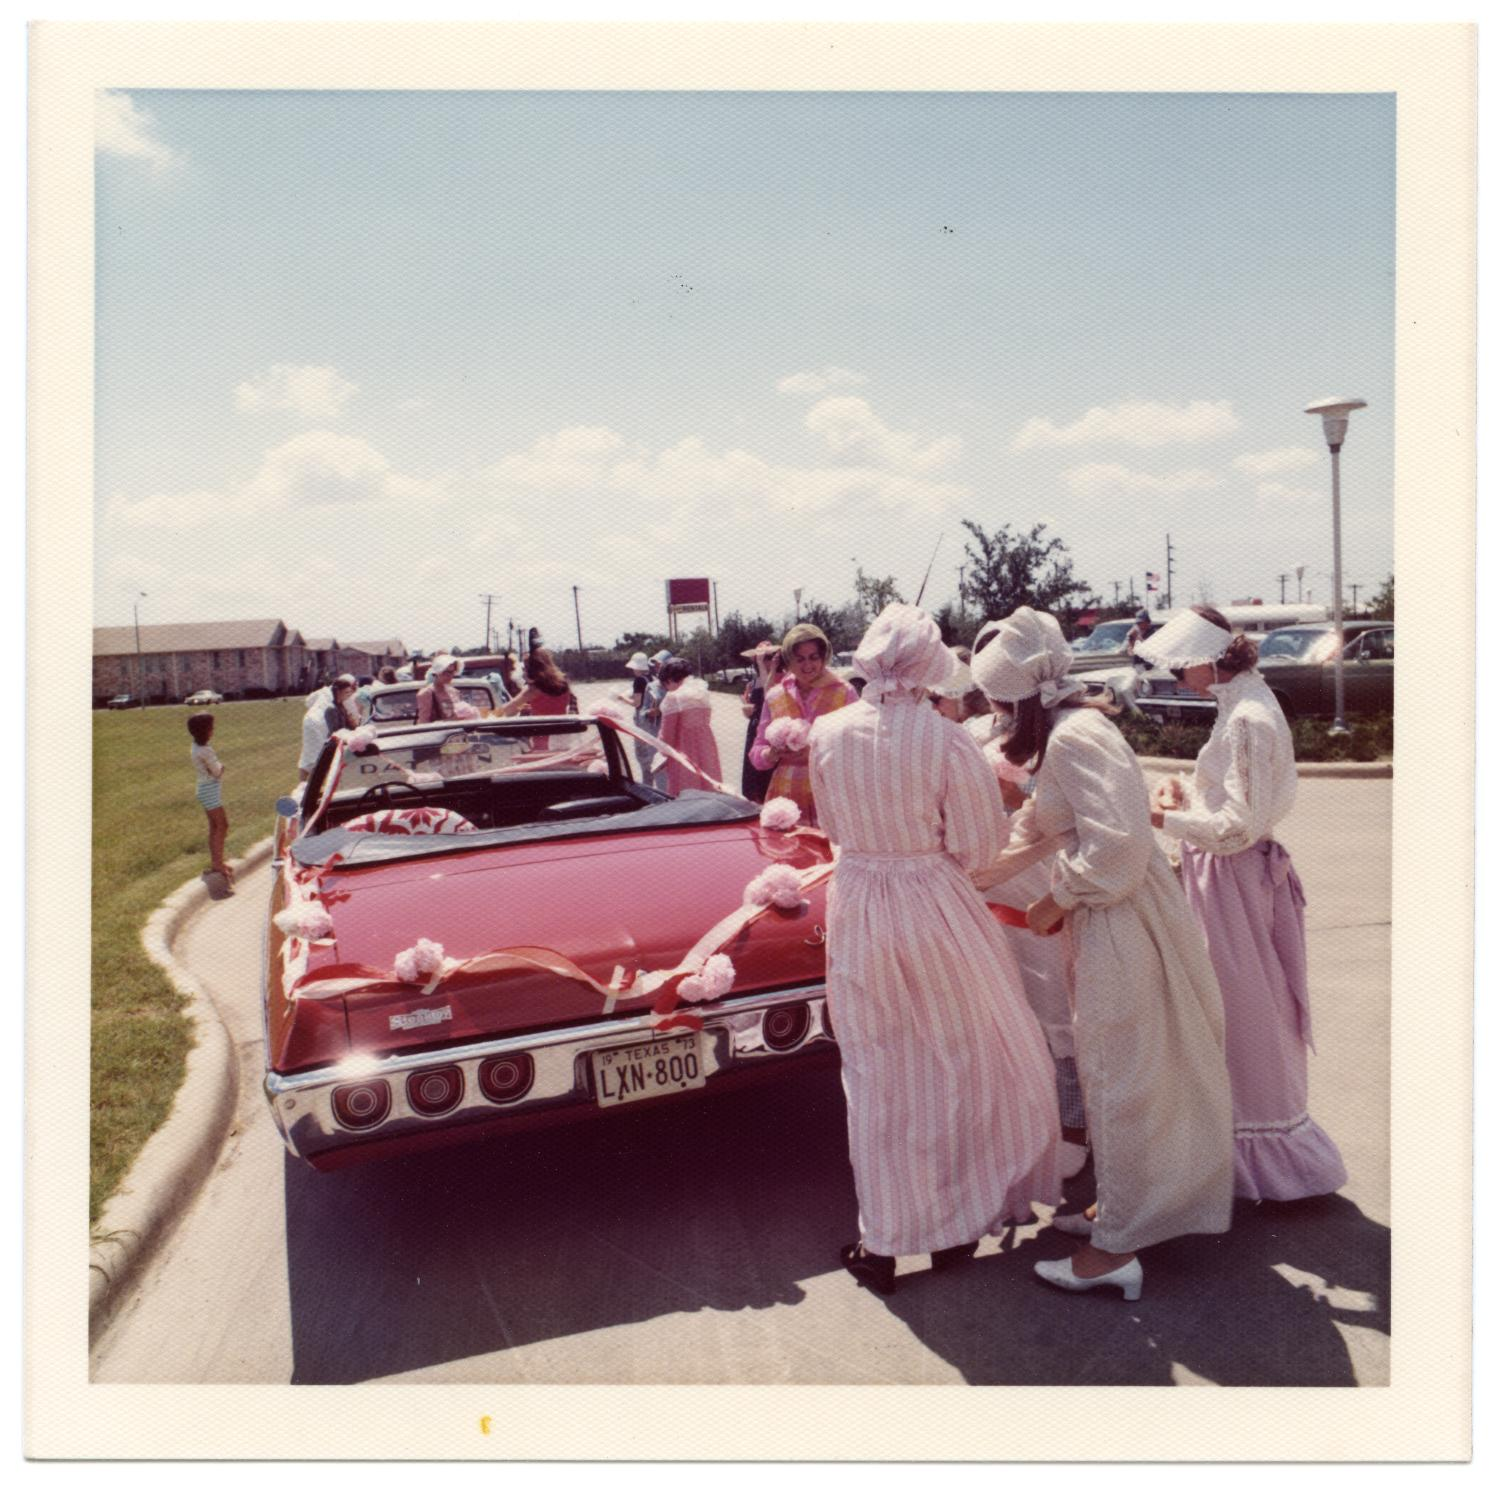 Richardson Centennial Parade, Photograph of a group of women dressed in nineteenth-century costume, waiting to participate in the Centennial parade. They are standing in front of a red convertible car decorated with pink flowers and streamers. In the background, there are other cars and people.,